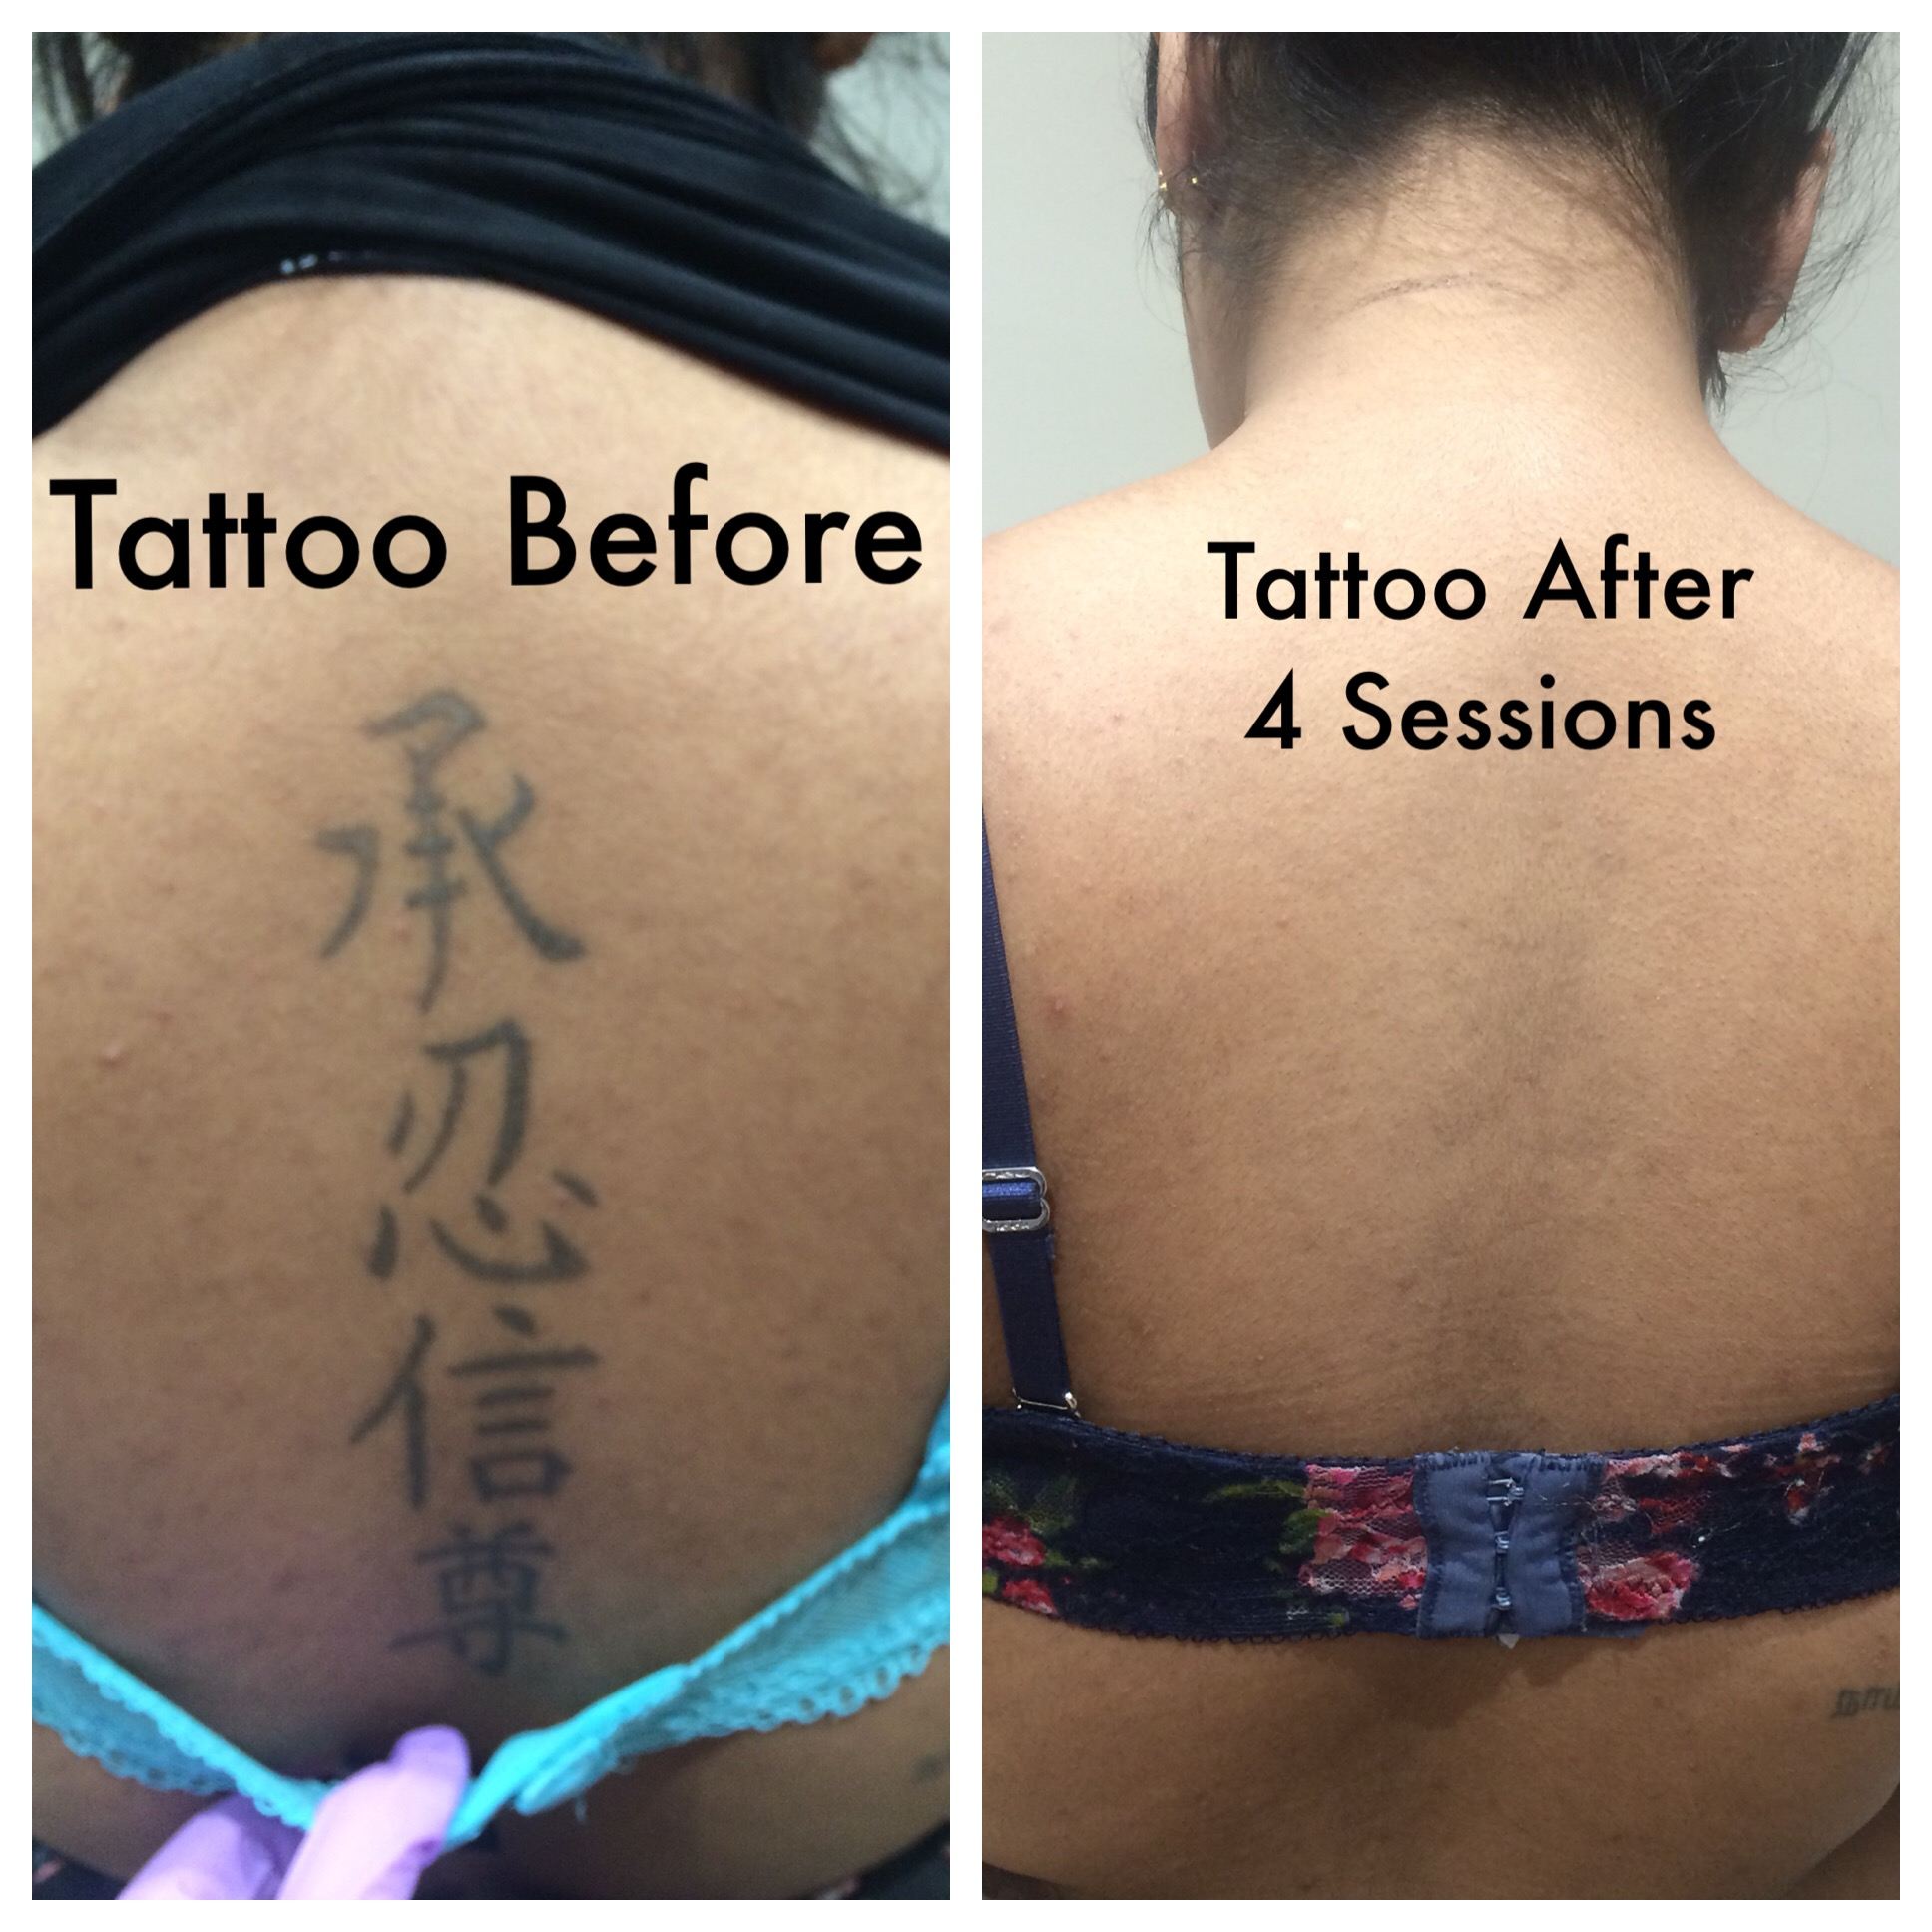 Tattoo Removal Treatment  Laser